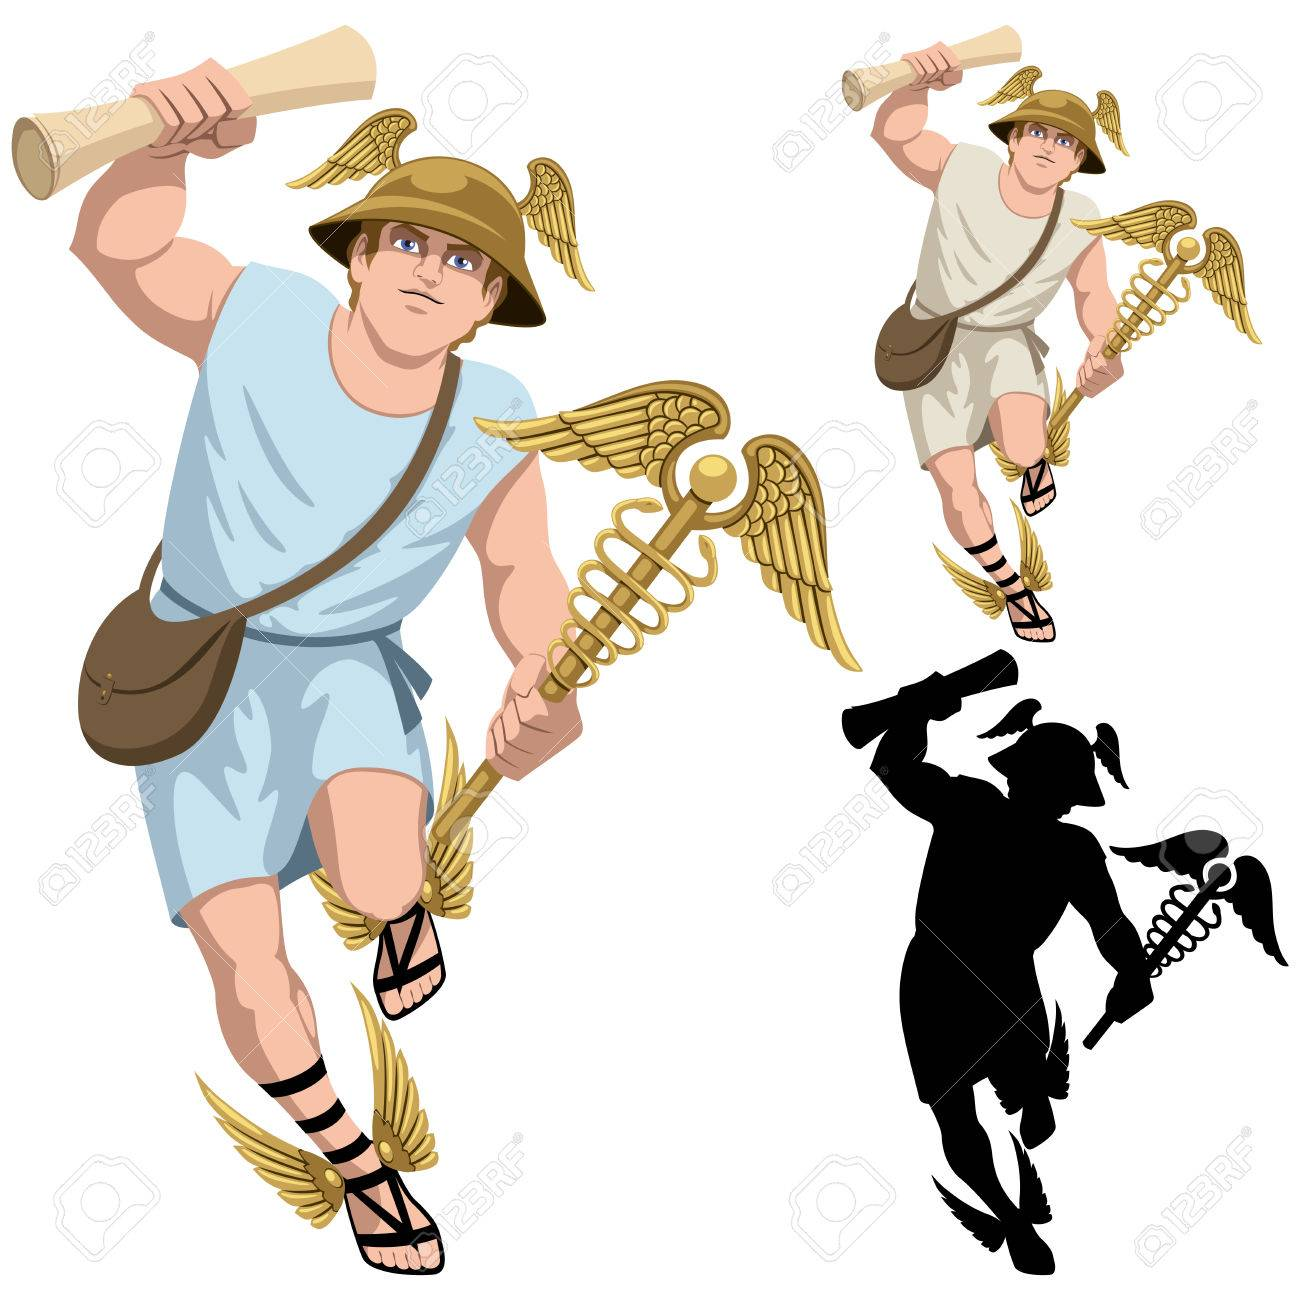 1300x1300 Greek God Hermes Isolated On White And In 3 Versions. Royalty Free